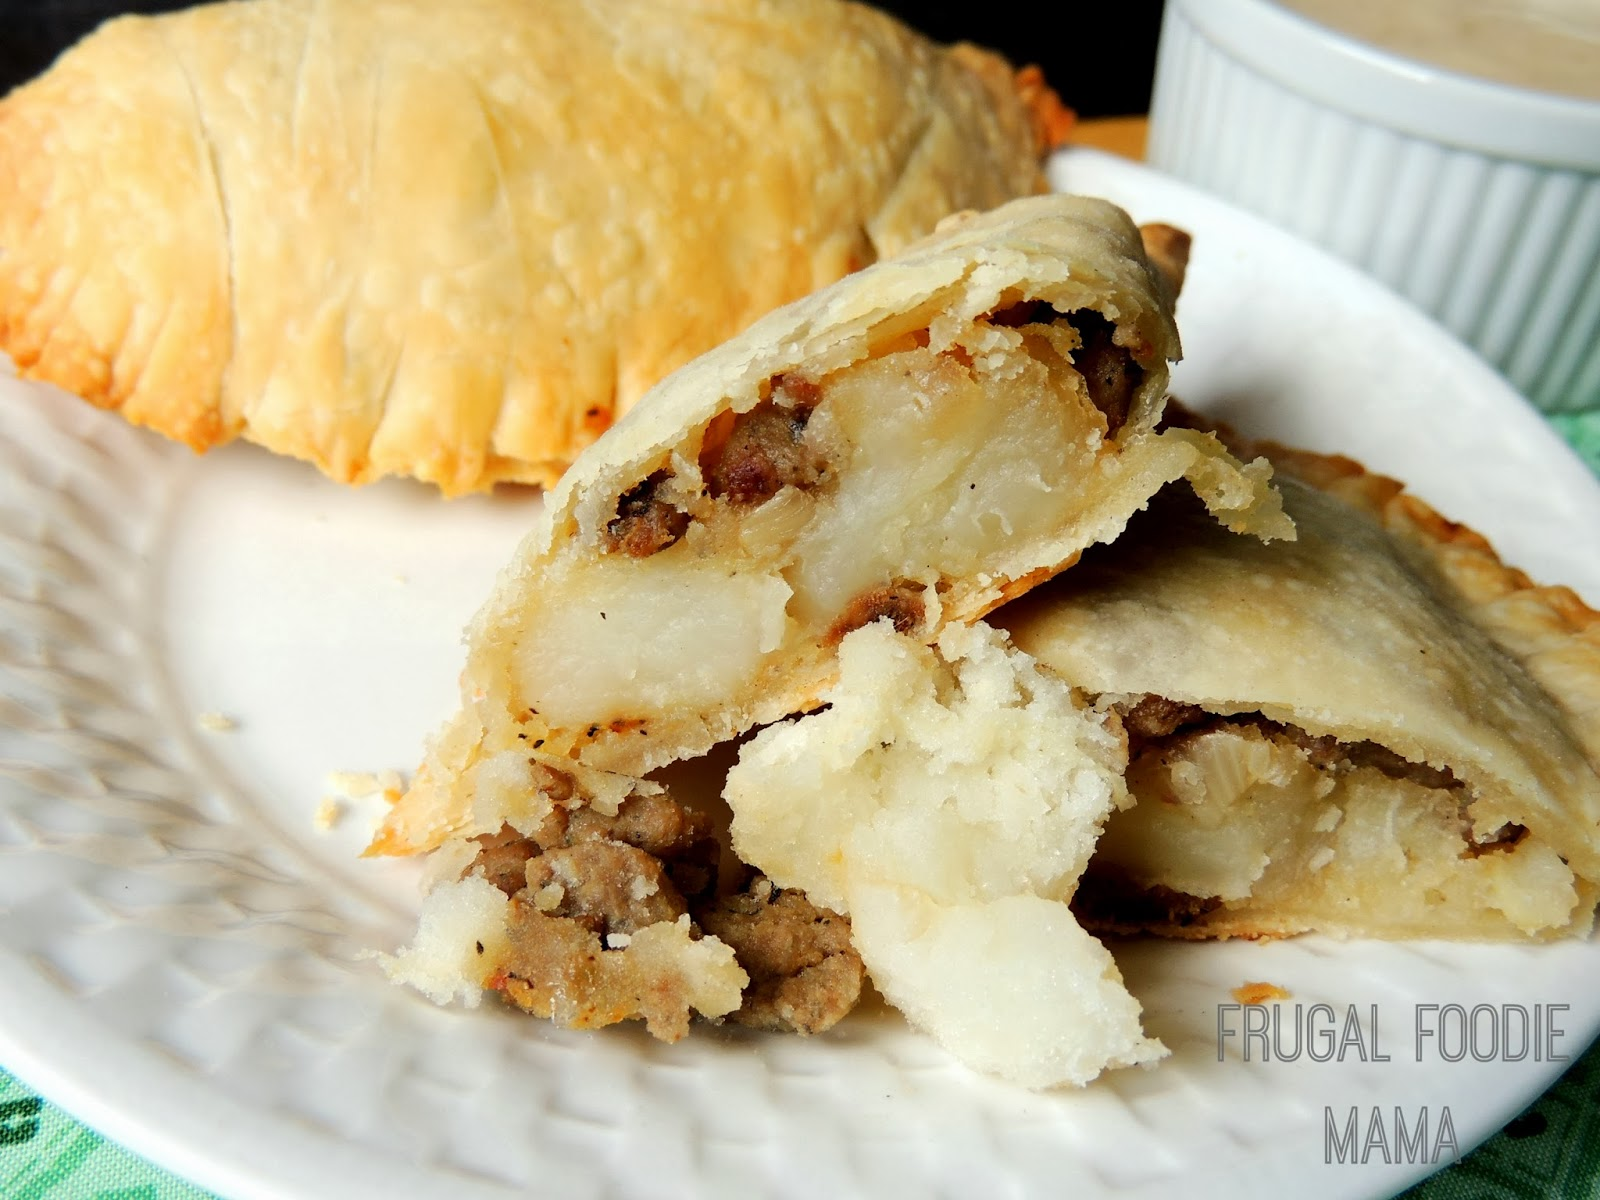 These Easy Turkey Sausage Irish Pasties have a hearty, tasty filling wrapped in a light, flaky crust and served with a quick and creamy homemade gravy.